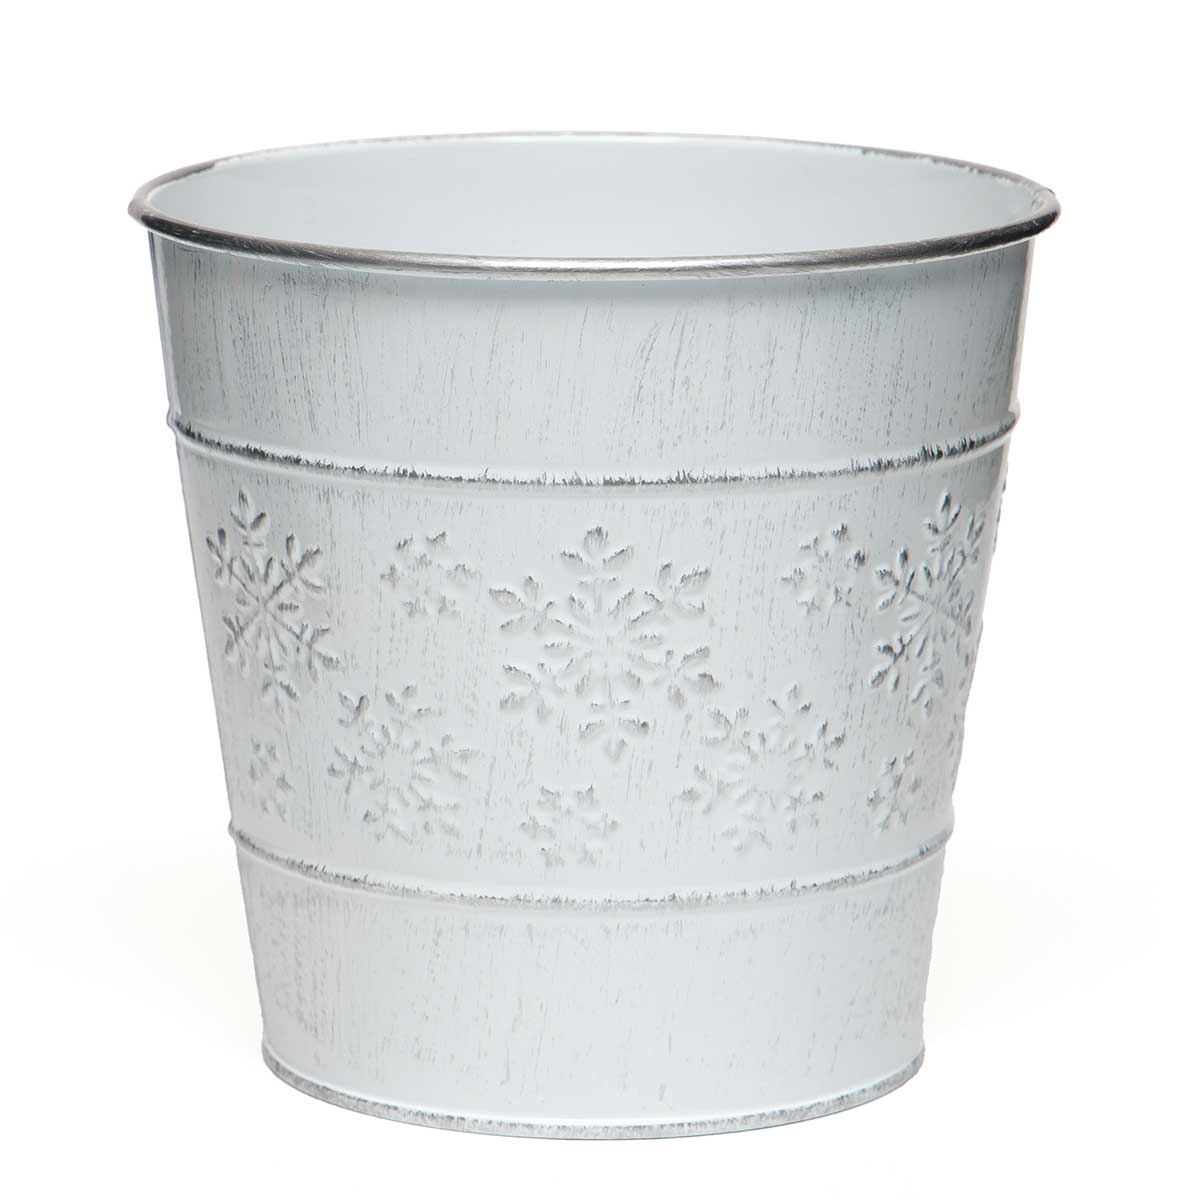 "SNOWFLAKE METAL BUCKET WHITEWASH/SILVER MEDIUM 6""X5.5"""